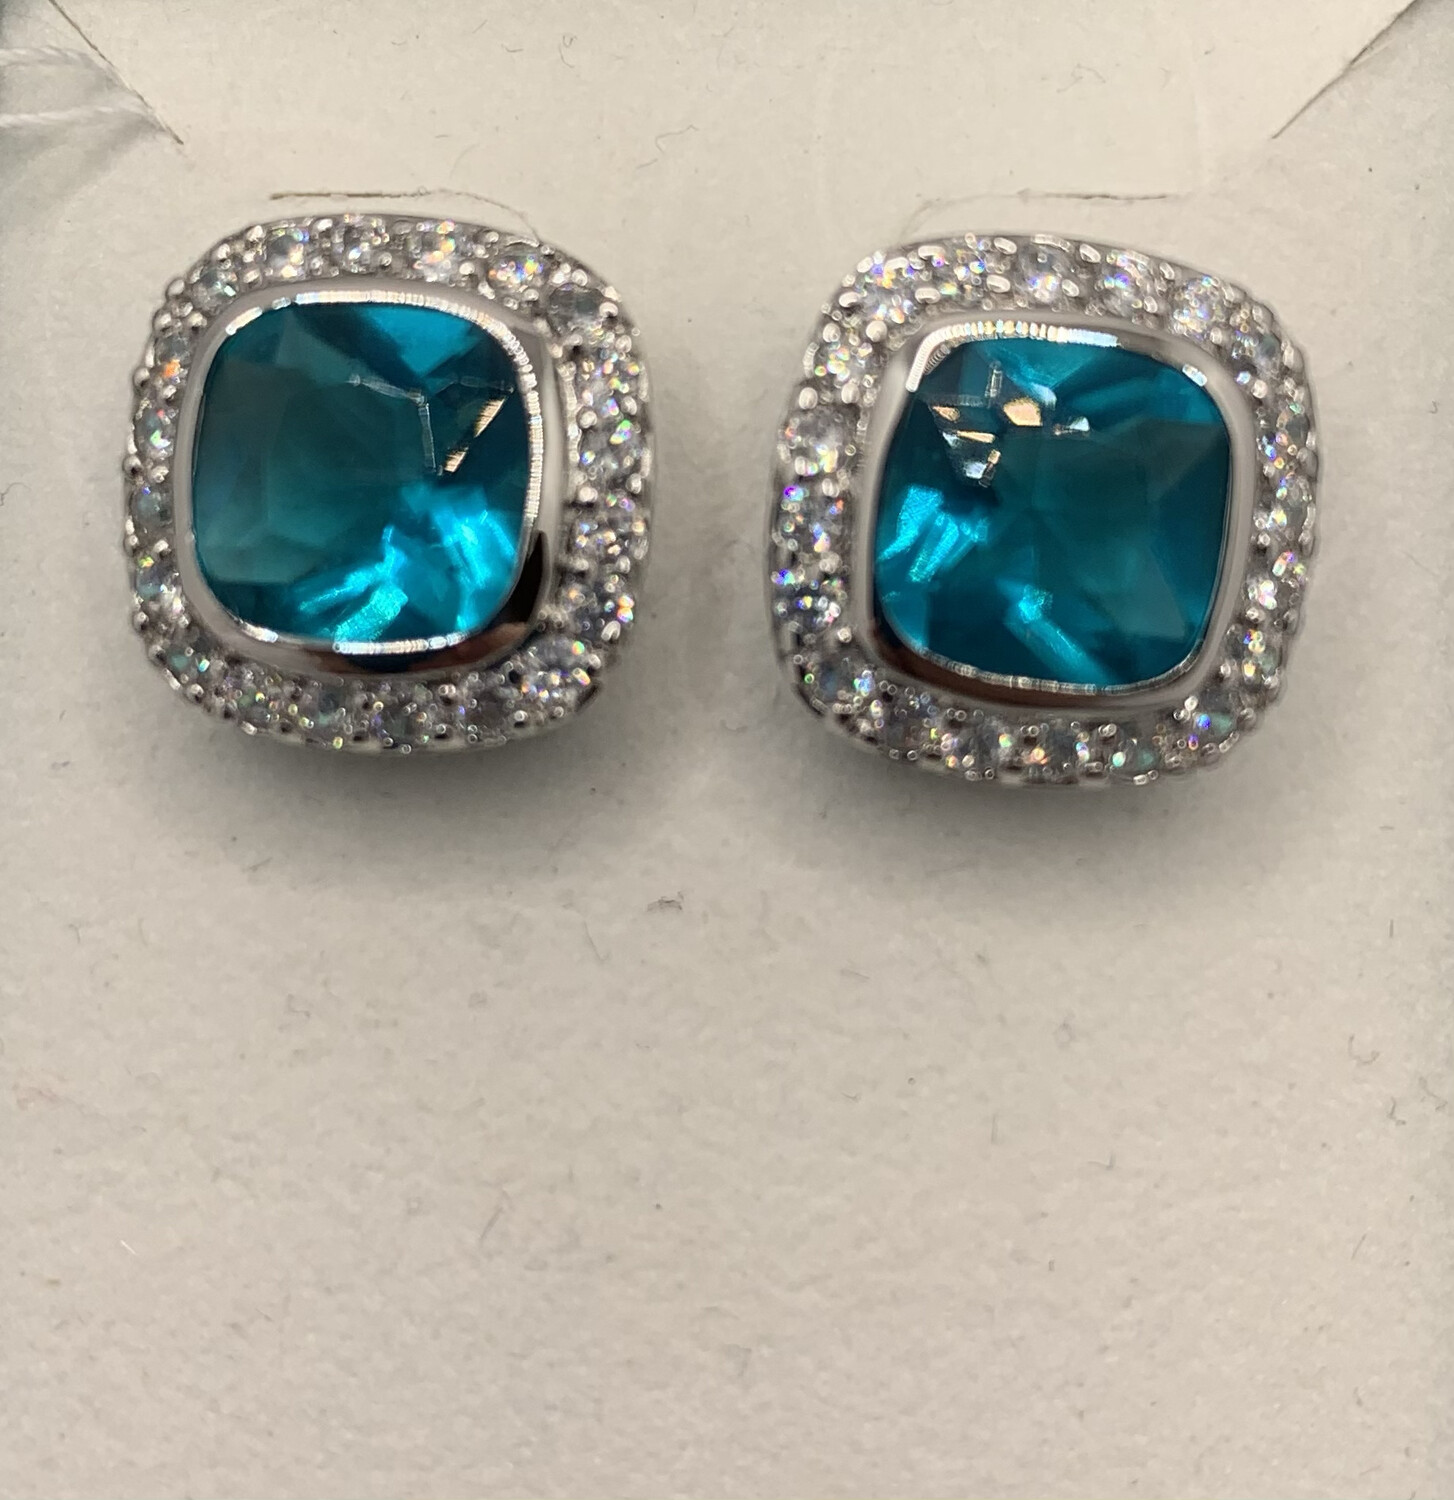 Brilliant Teal With CZ Halo Post Earrings Sterling Silver